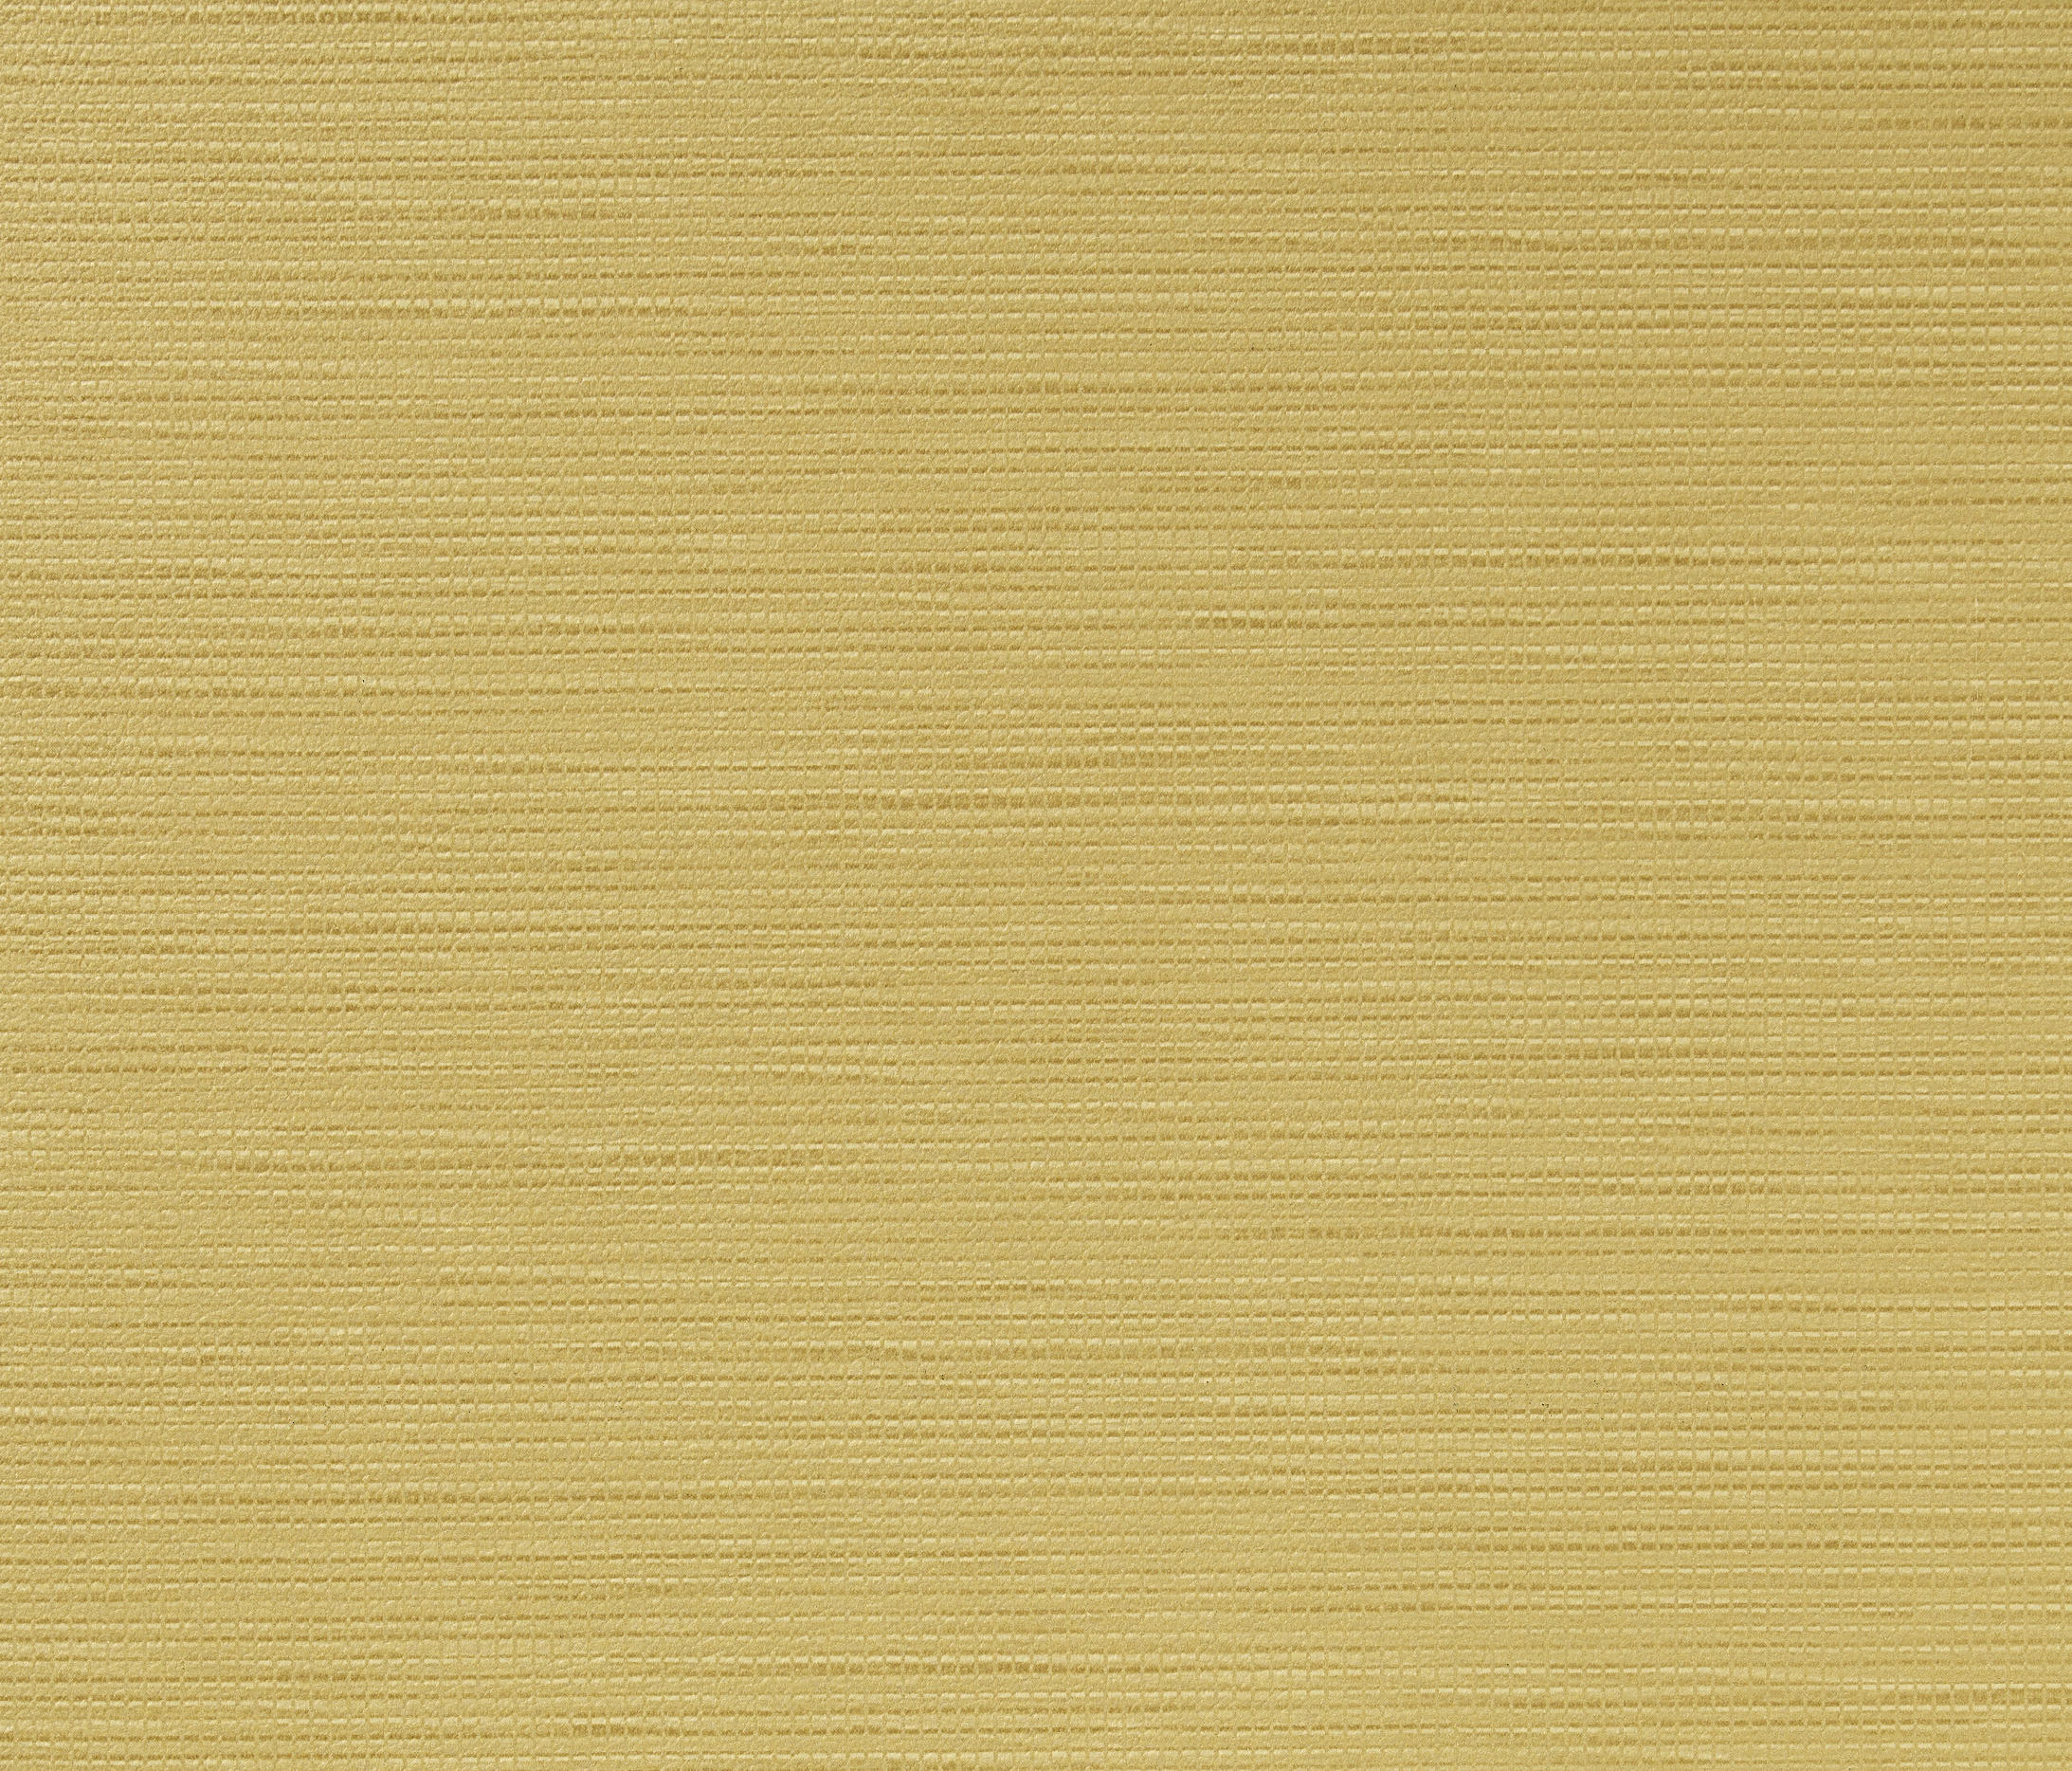 Sagra 162 06 Wall Coverings Wallpapers From Vescom